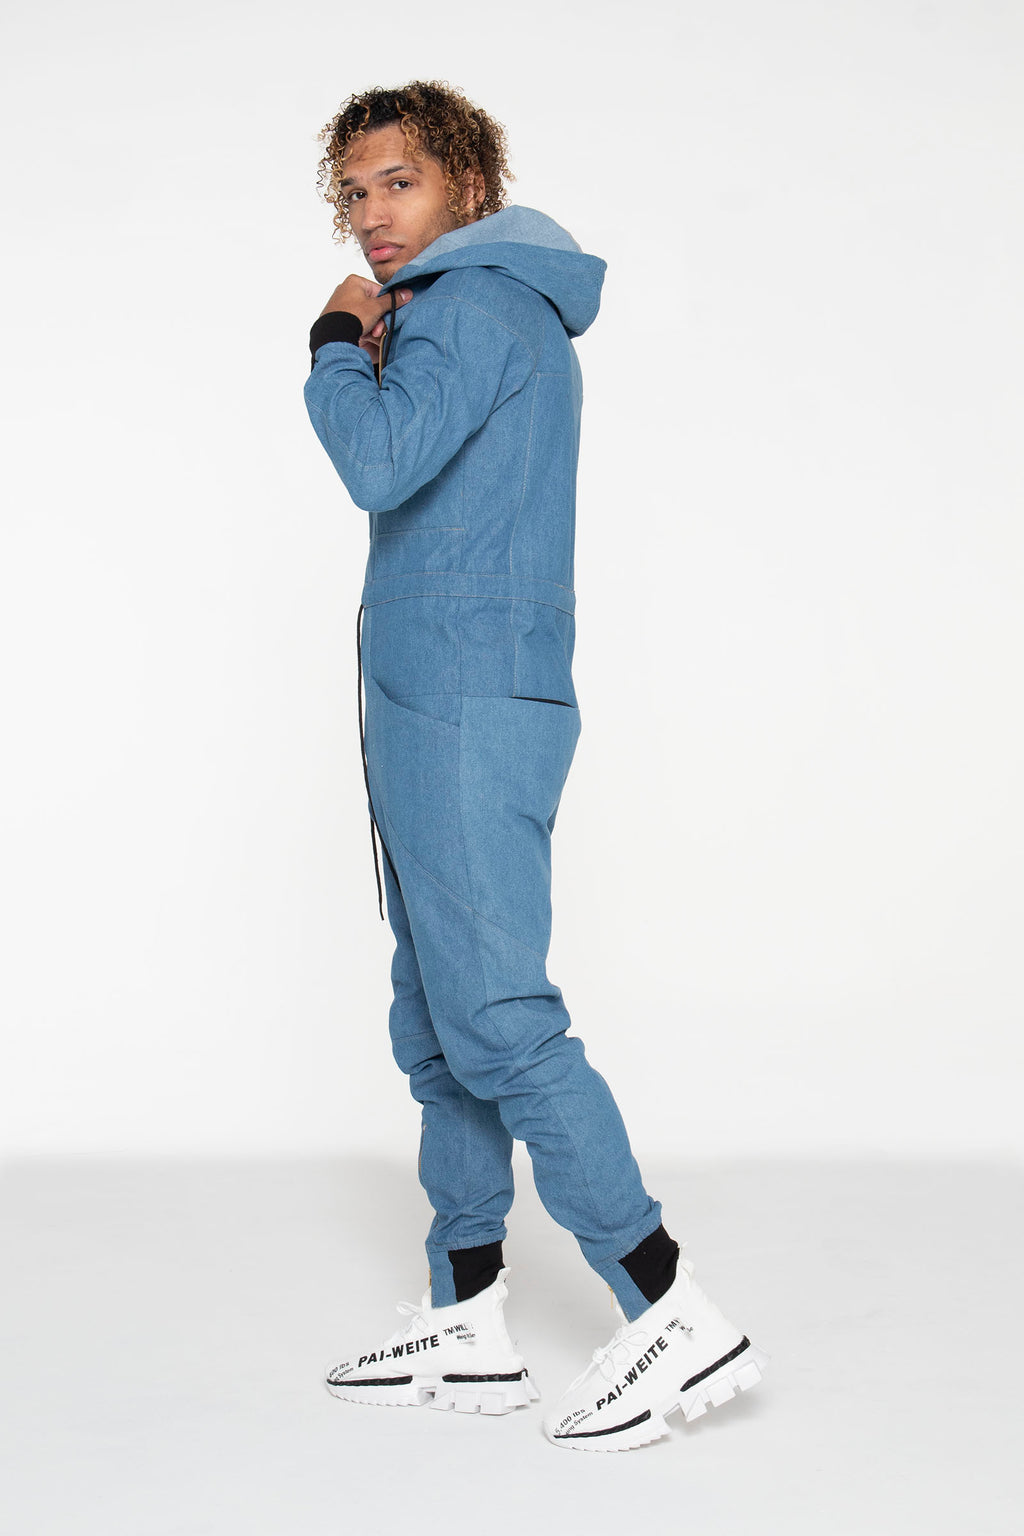 Light Blue Denim Unisex Jumpsuit - pacorogiene